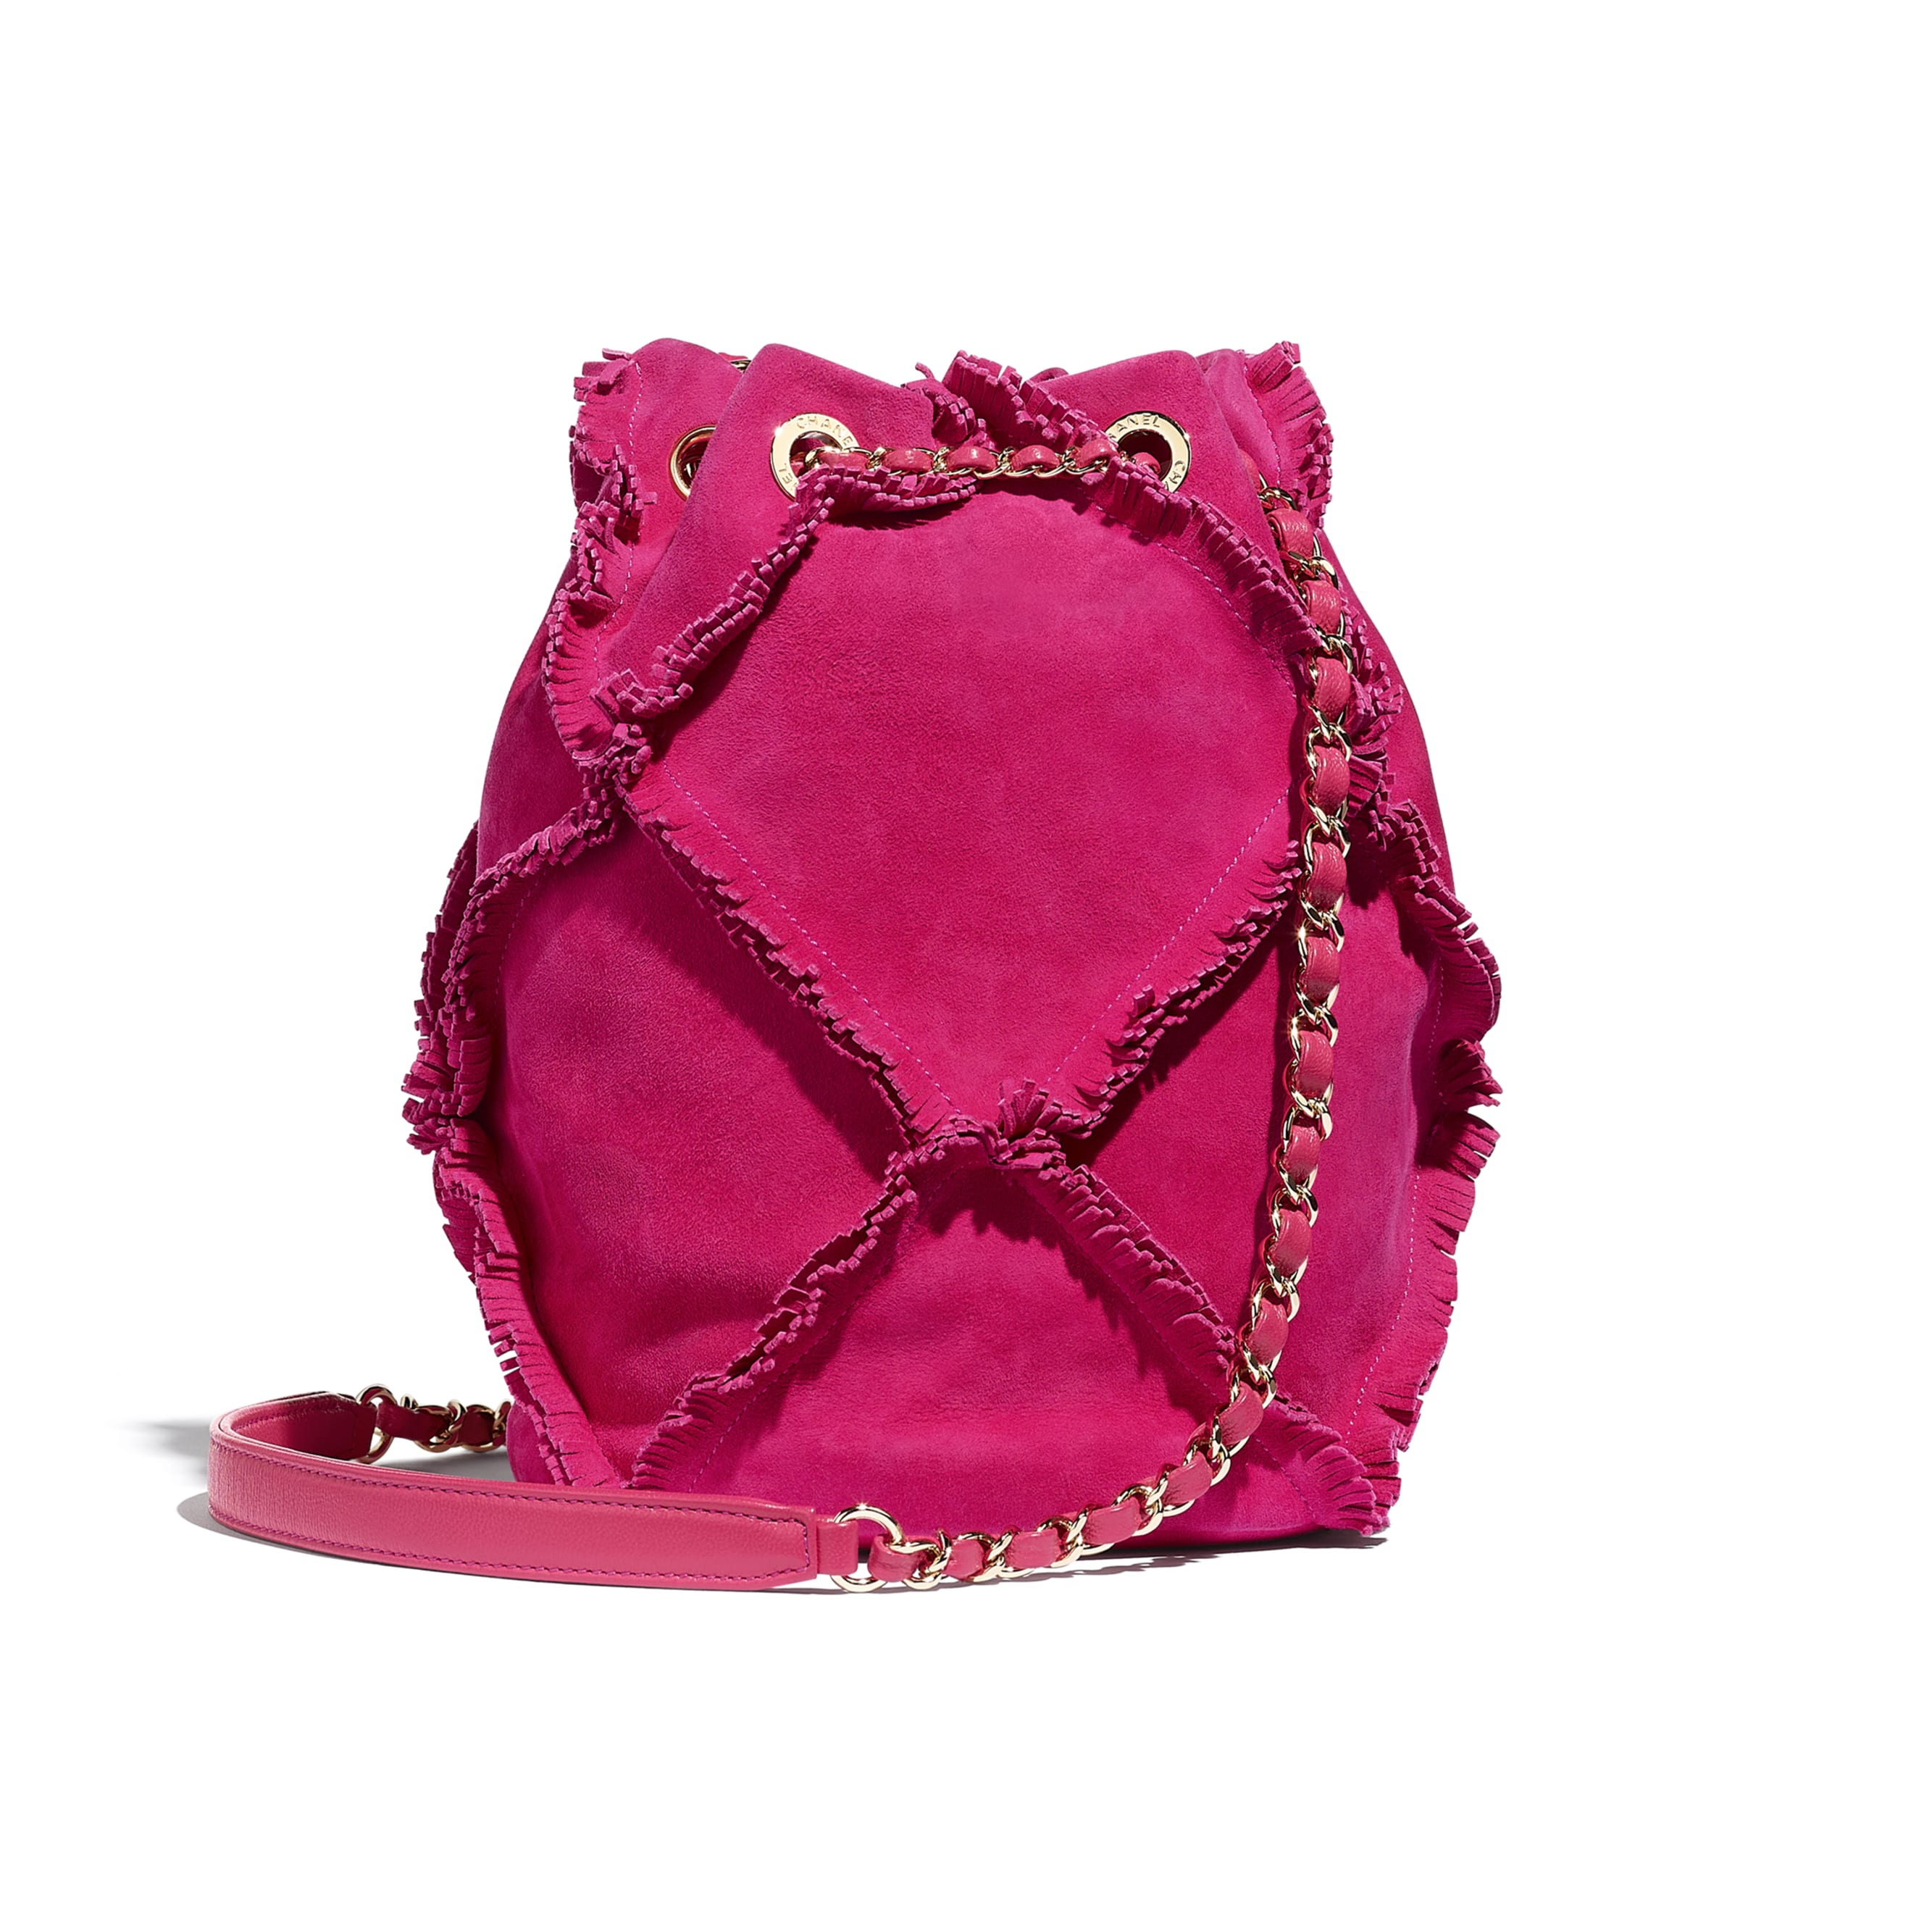 Small Drawstring Bag - Fuchsia - Suede Goatskin & Gold-Tone Metal - Alternative view - see standard sized version